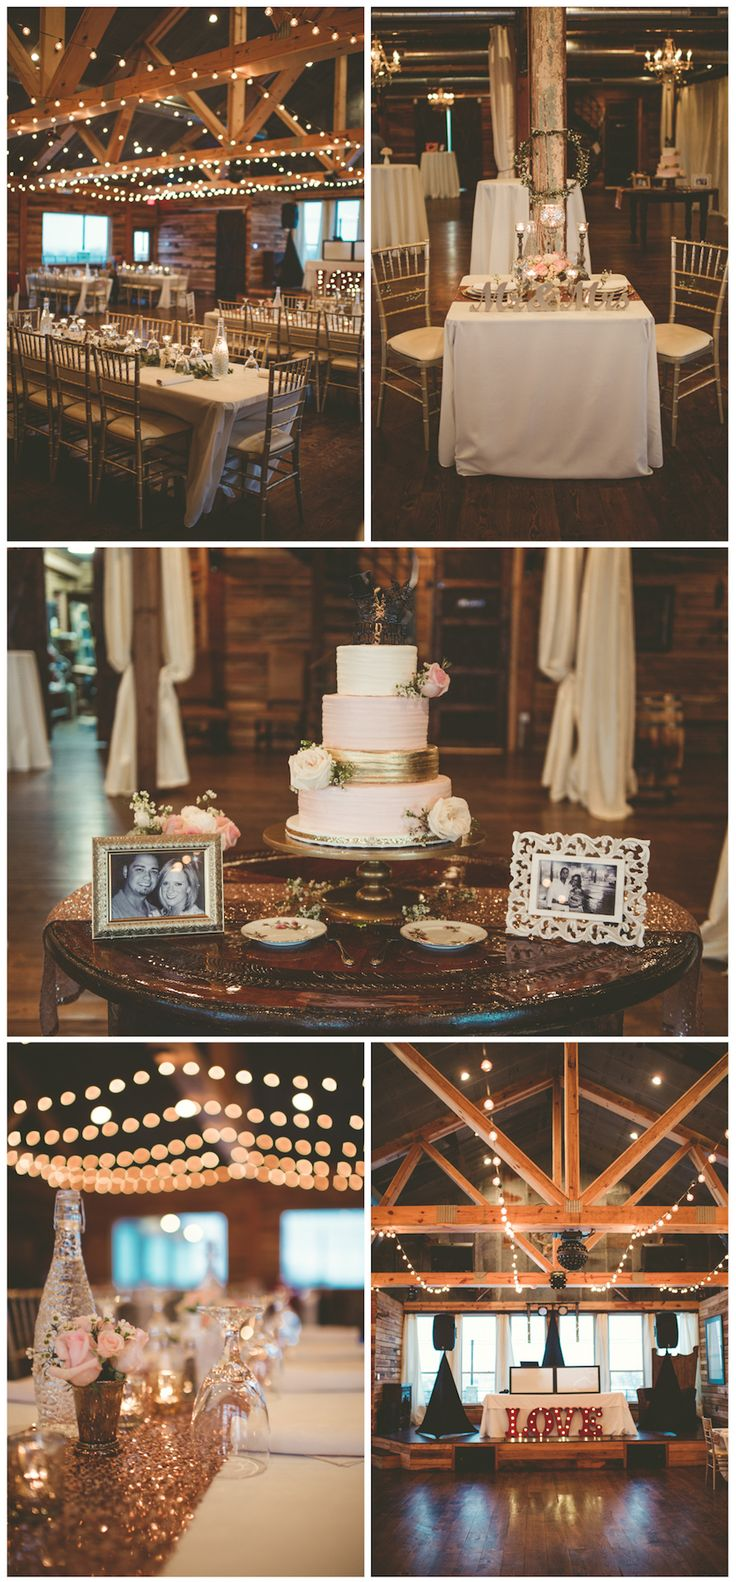 An Oklahoma barn wedding at Southwind Hills barn venue by Hibben Photography. Love the wedding cake with photos of the couple, edison lights strung in the rafters, & the LOVE marquee!